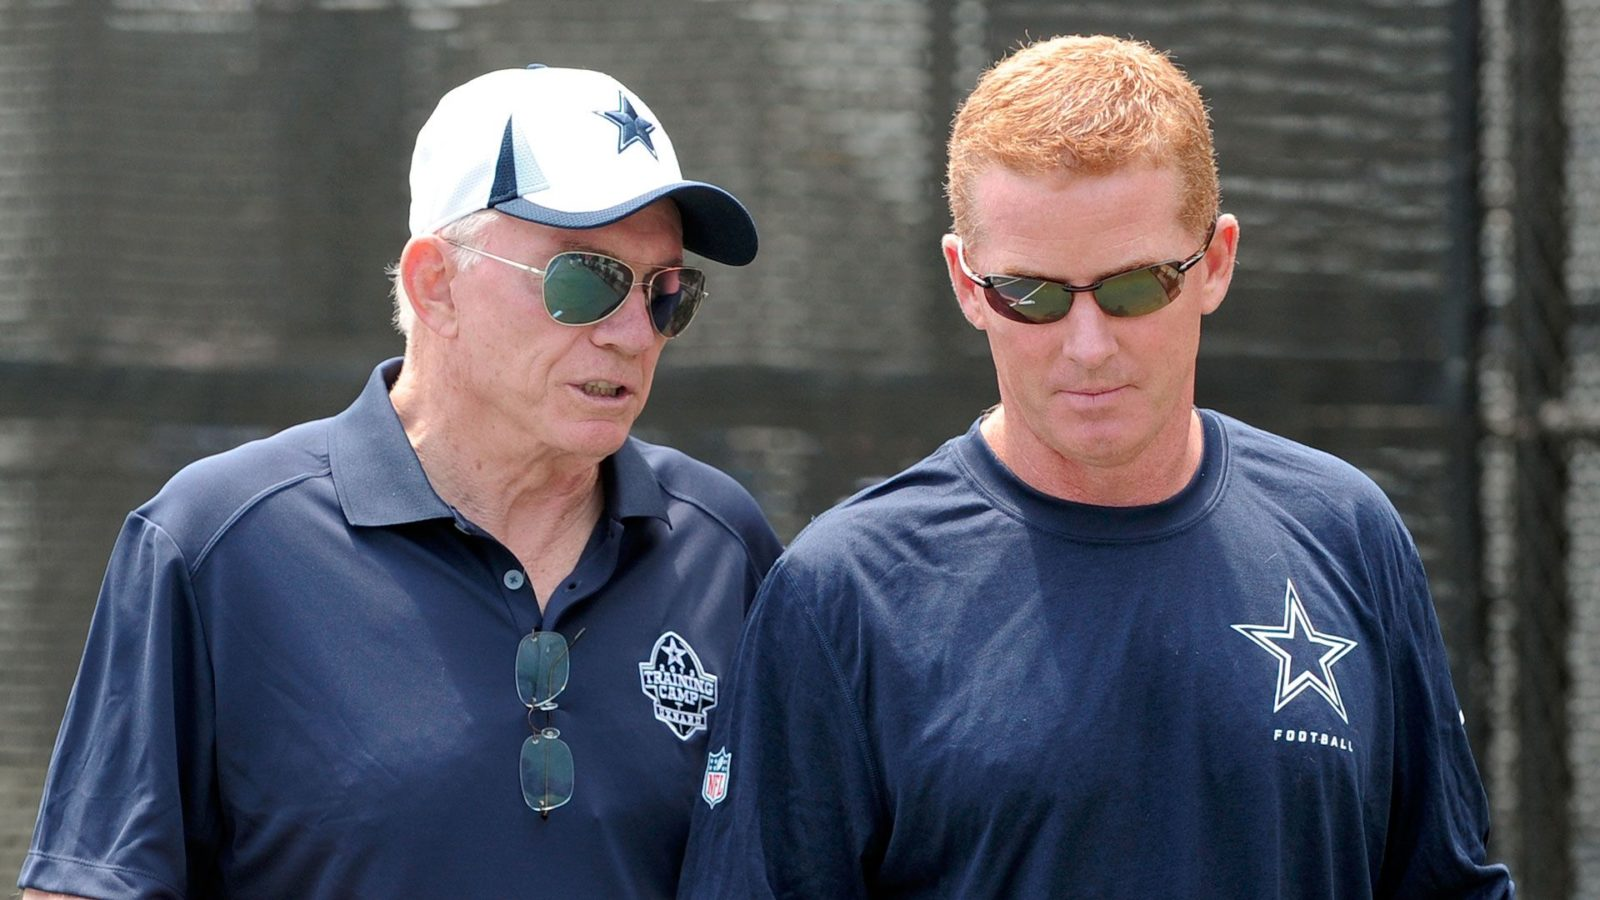 Latest News: Cowboys owner Jerry Jones says he's sticking with Jason Garrett – ESPN